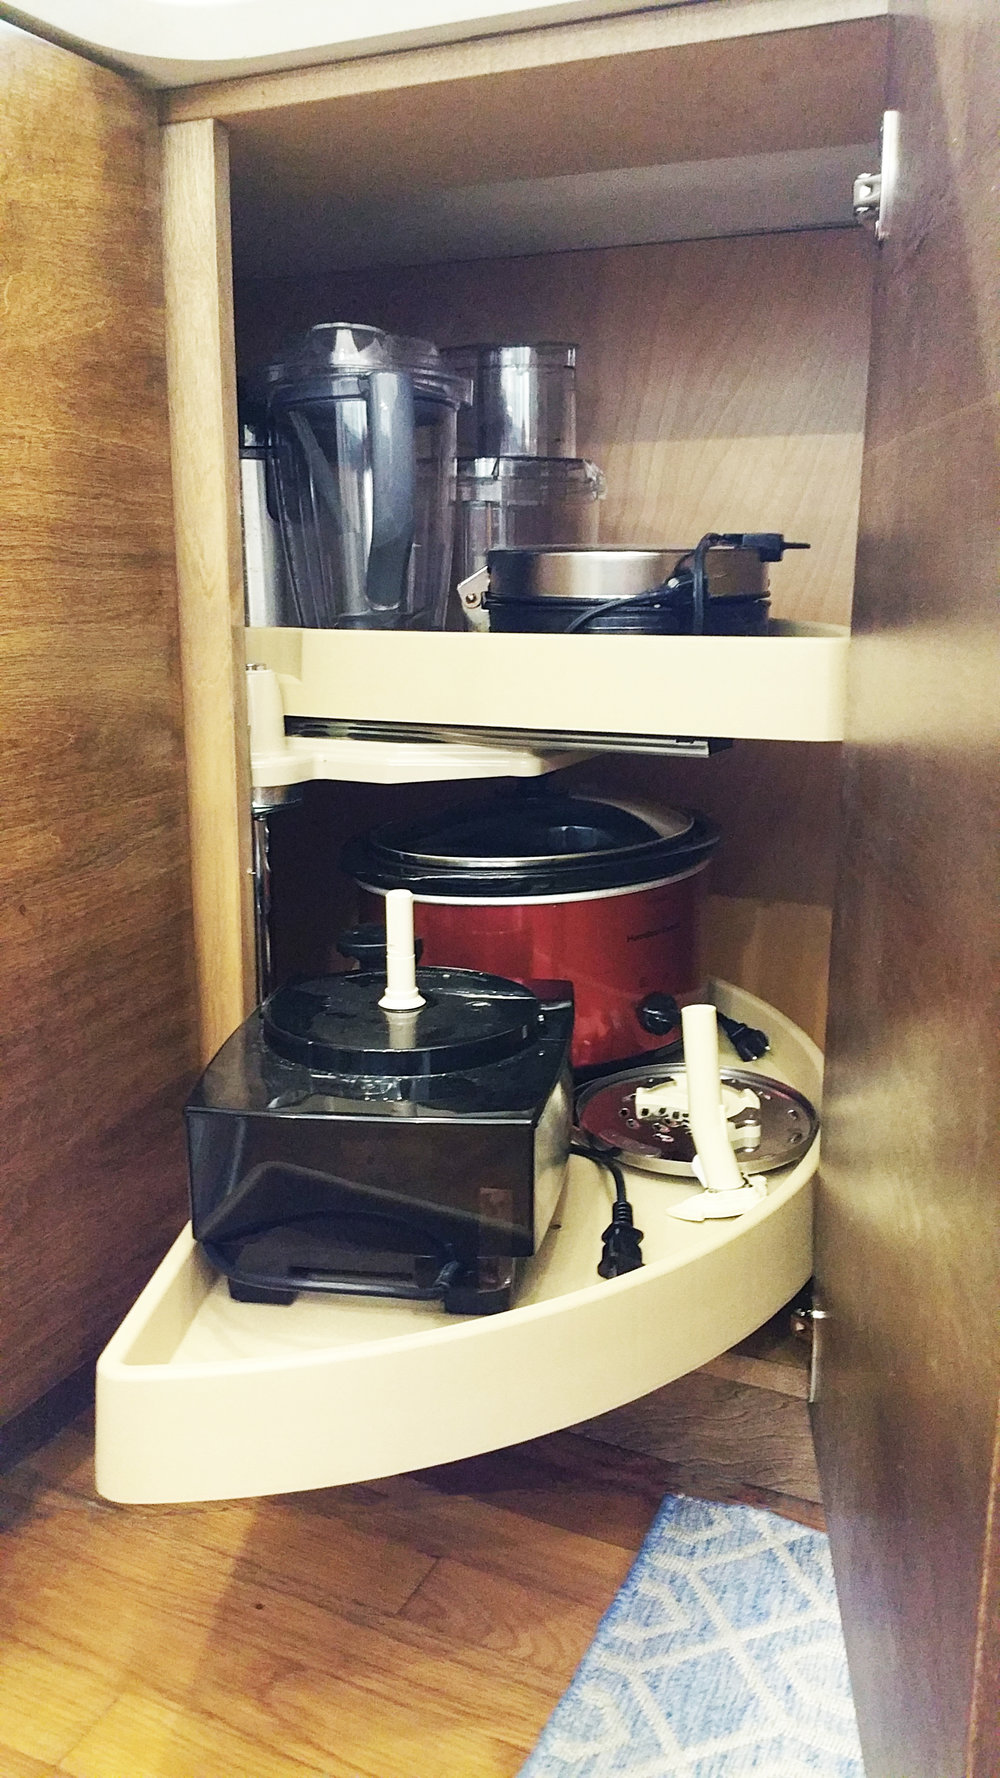 Lazy Susan storage in the corners